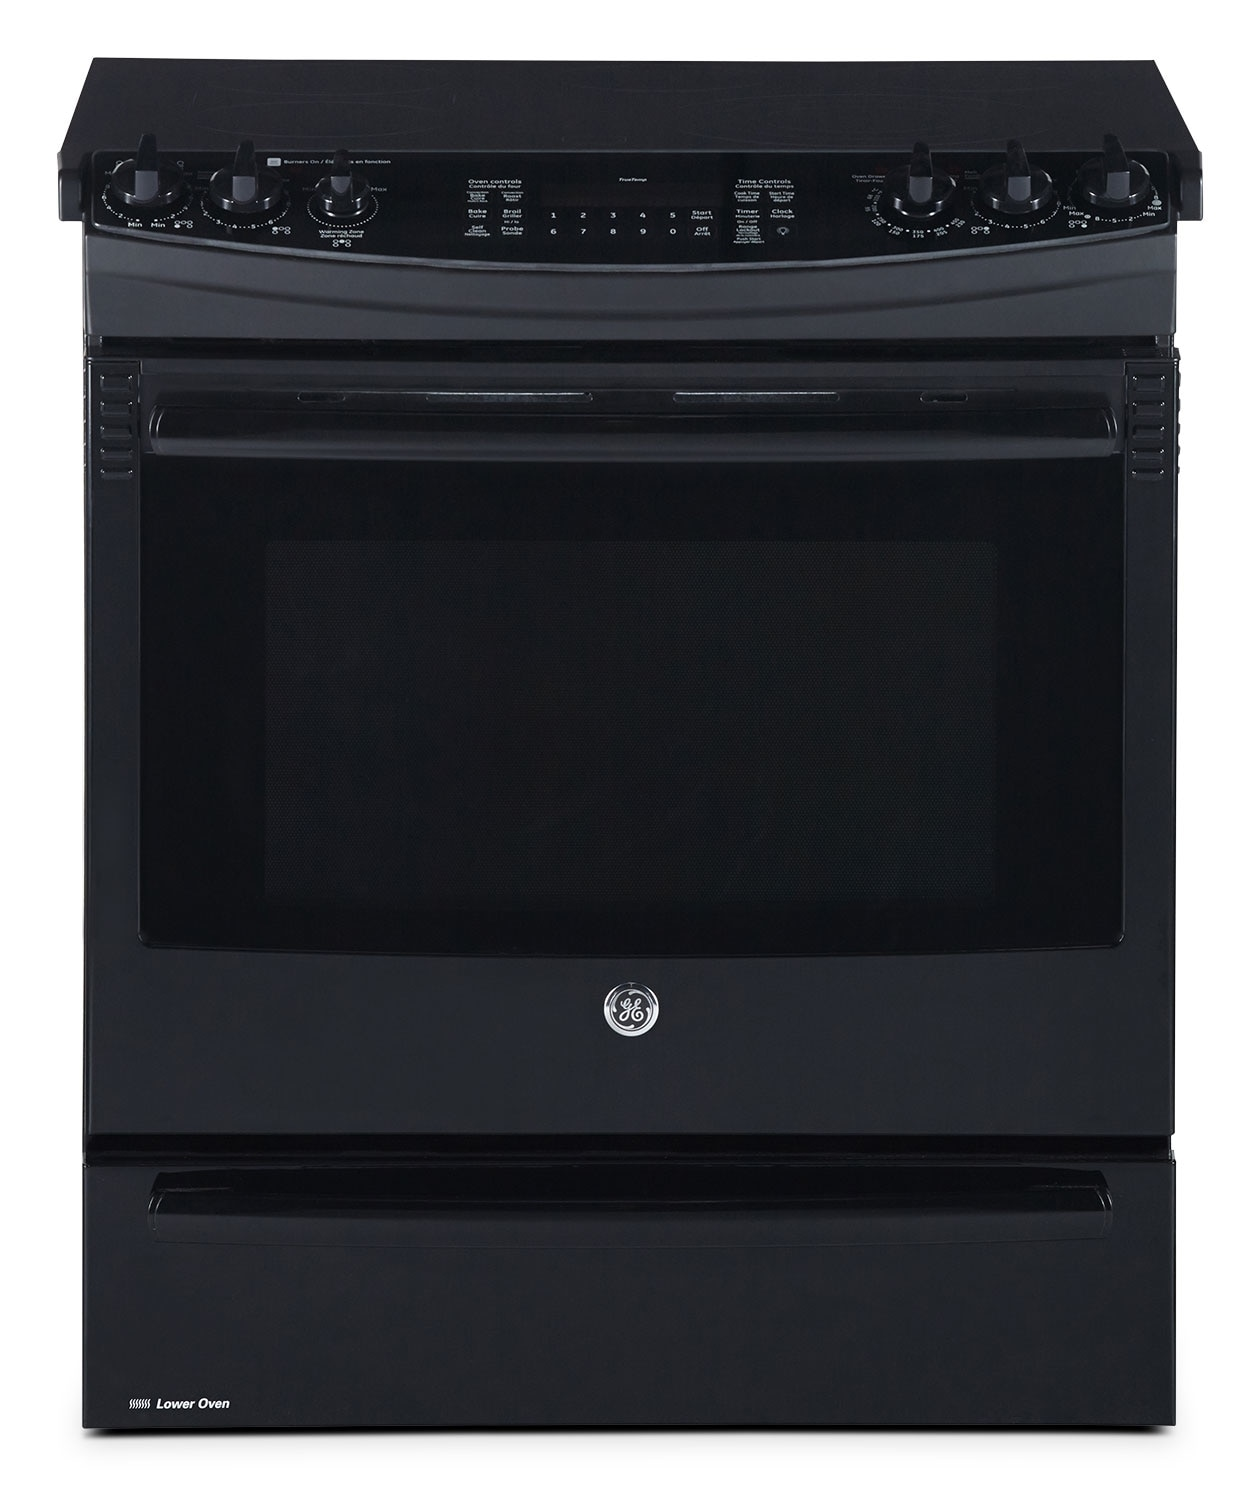 Cooking Products - GE Black Slide-In Electric Convection Range (6.6 Cu. Ft.) - PCS940DFBB